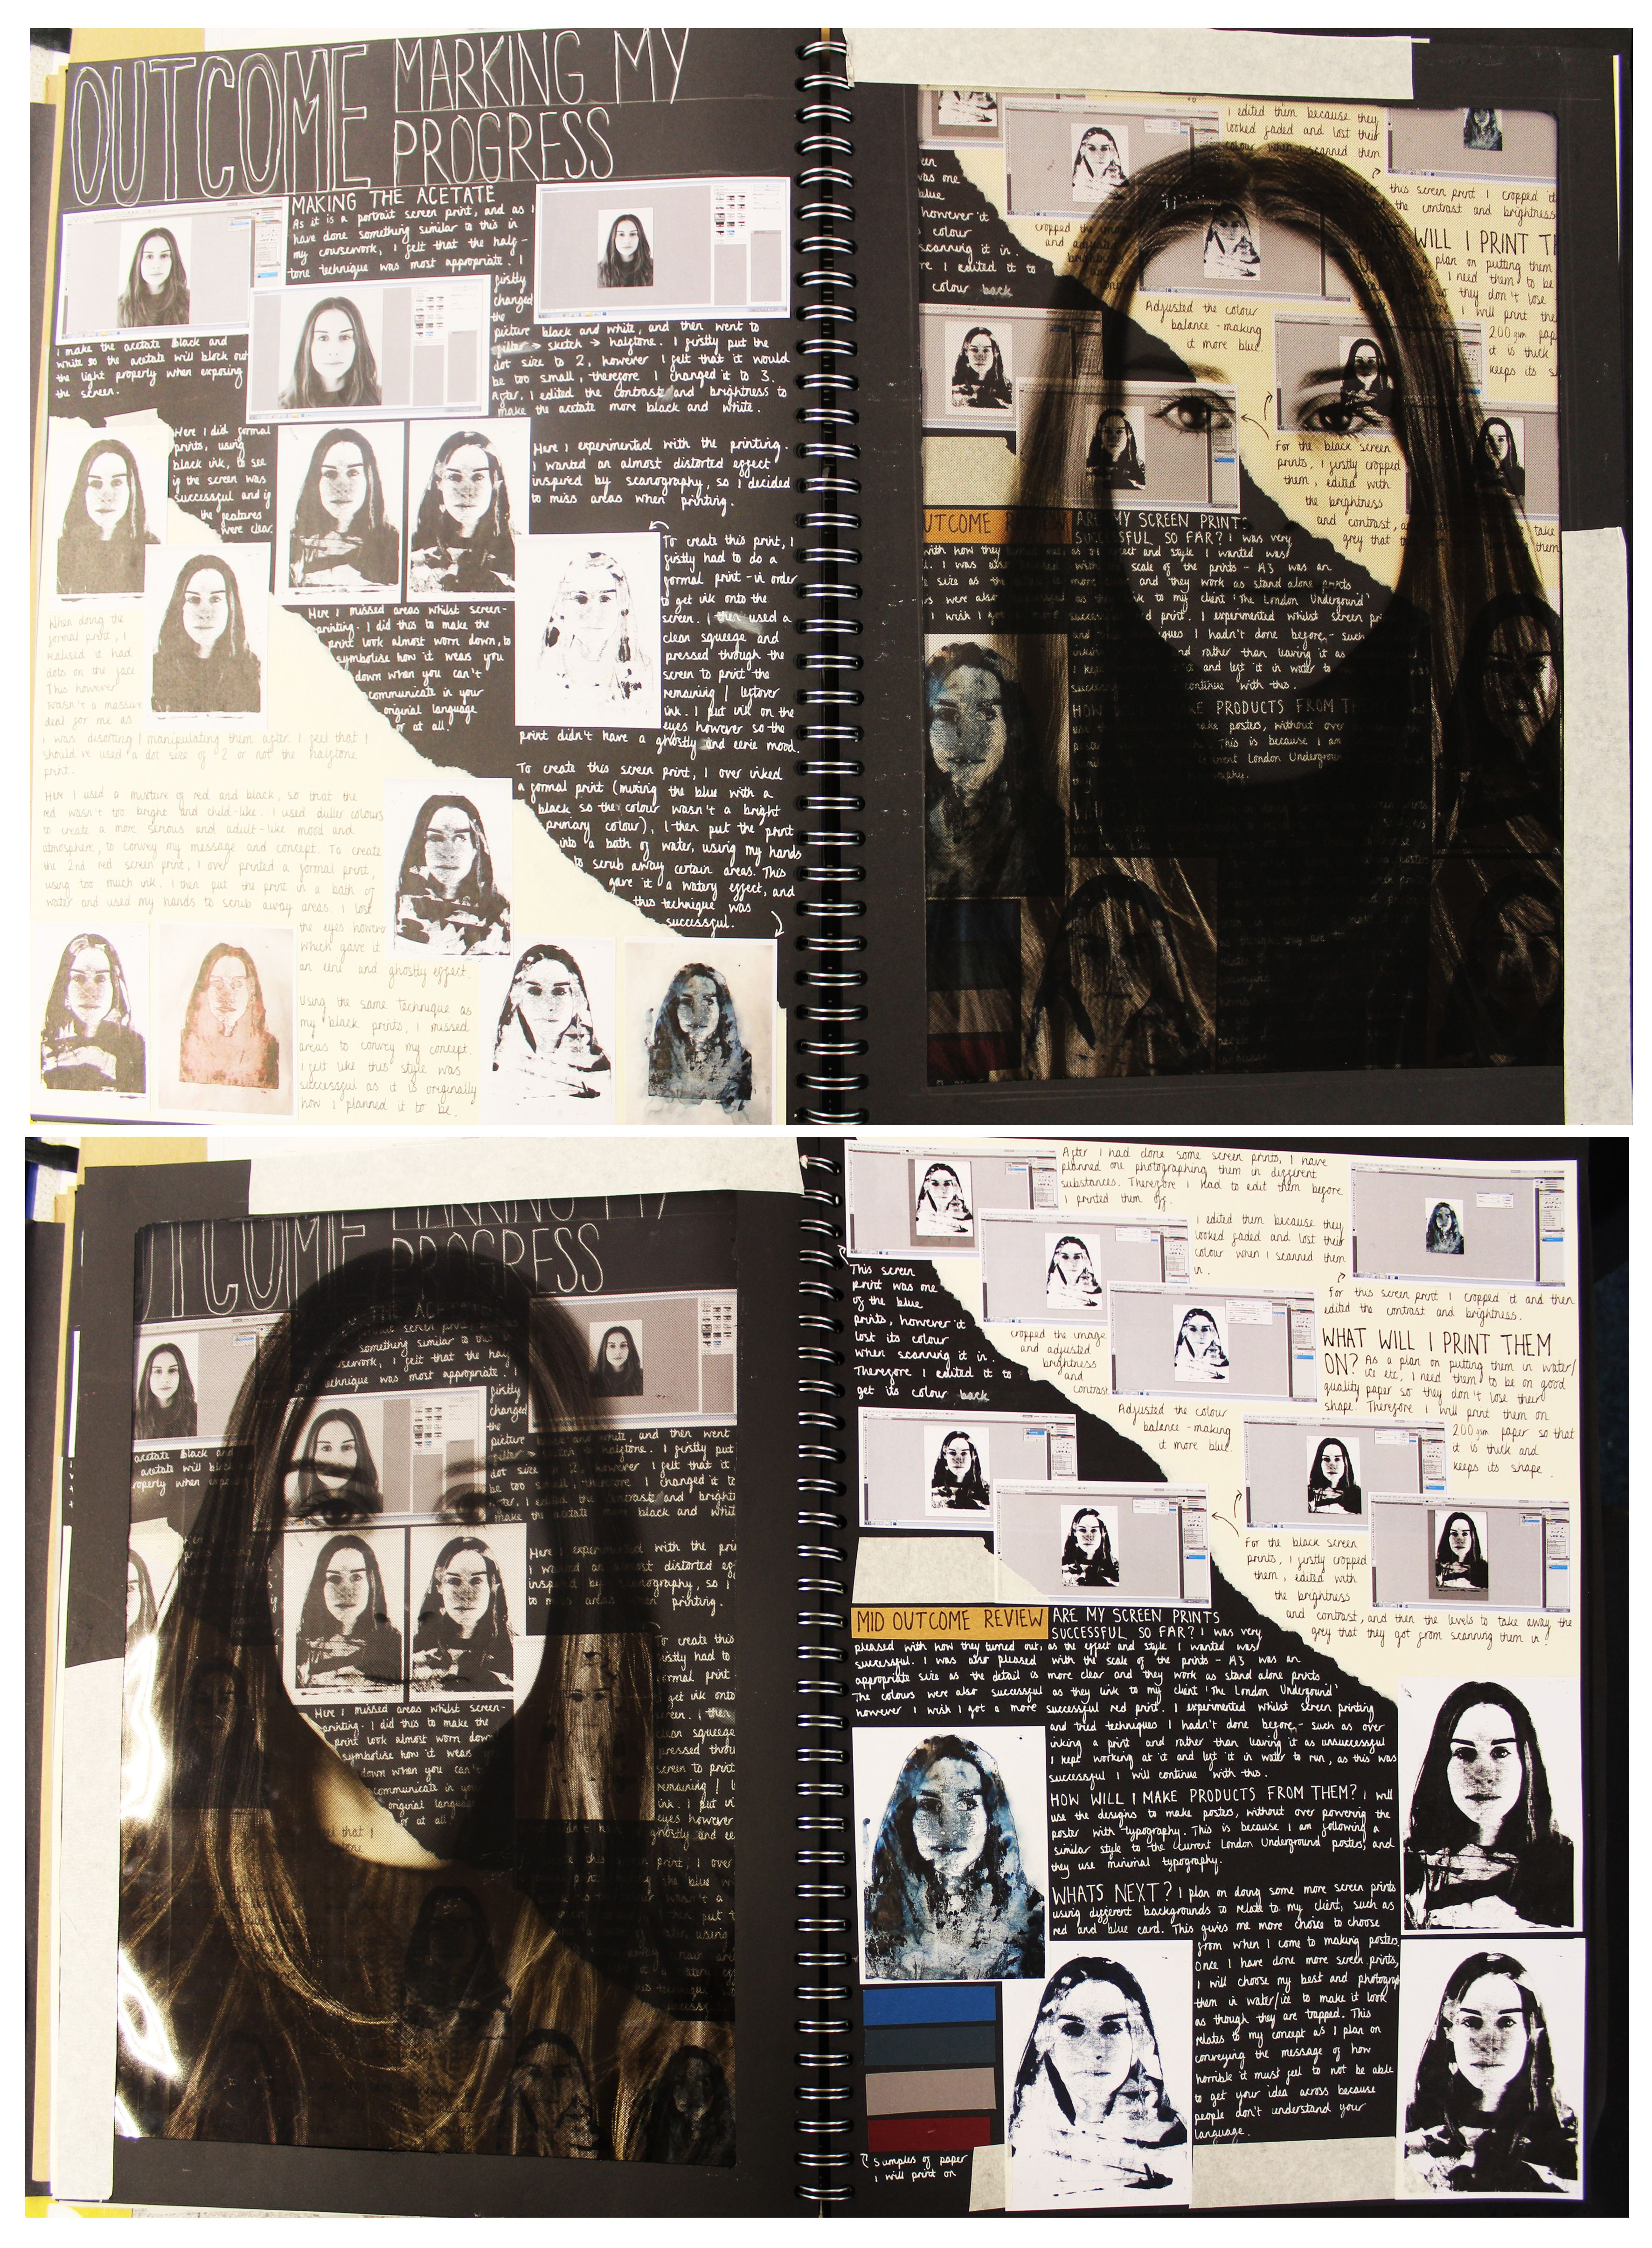 A2 Graphics A3 Black Sketchbook Outcome Progress And Mid Outcome Review Freedom And Or Limitations Thoma Photography Sketchbook Sketch Book Gcse Art Sketchbook